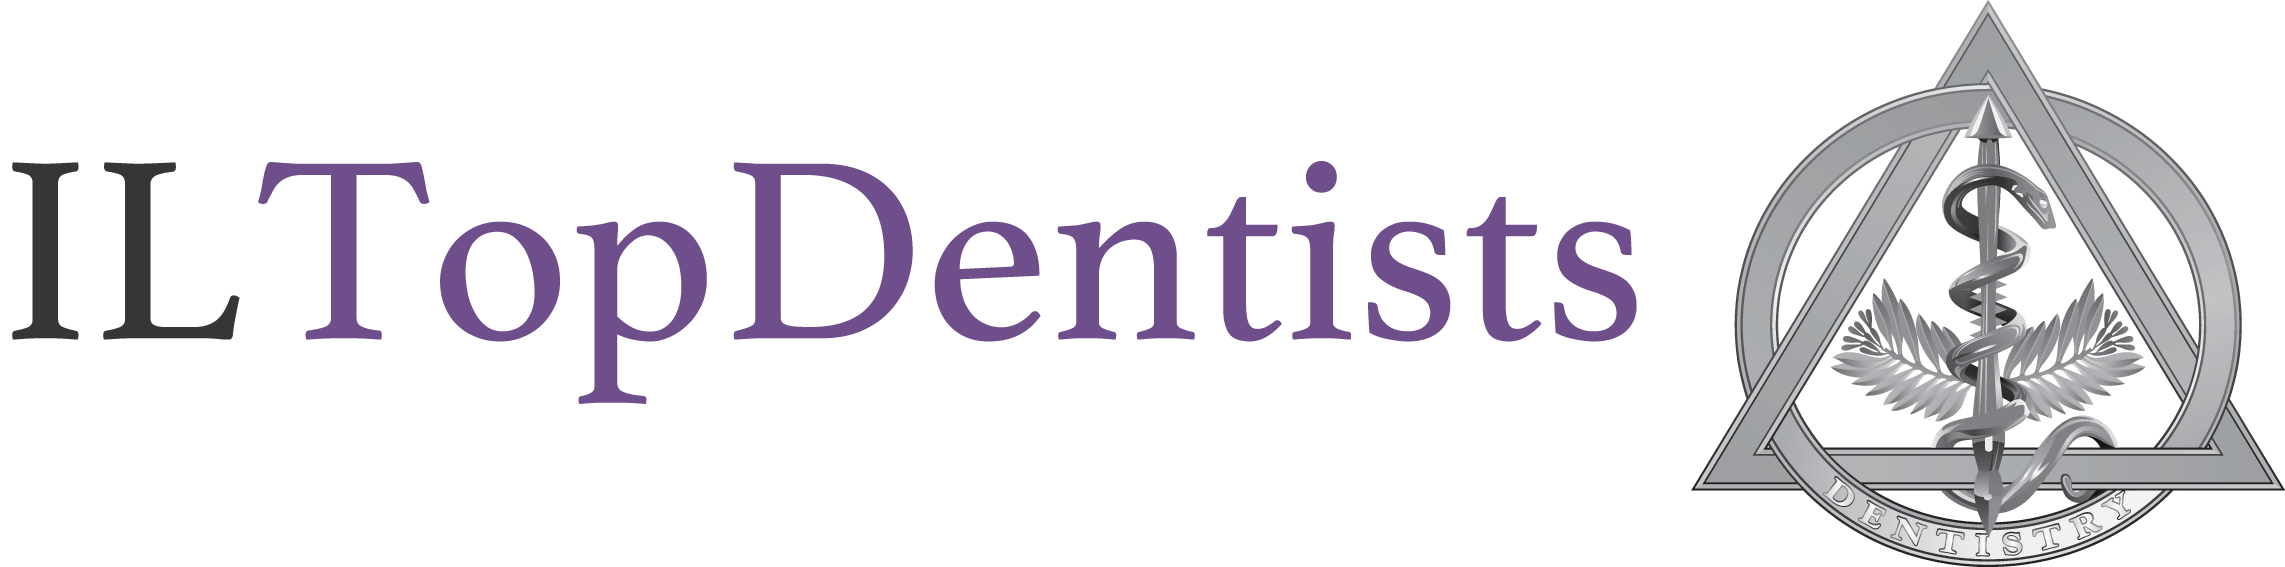 Top Dentists in IL